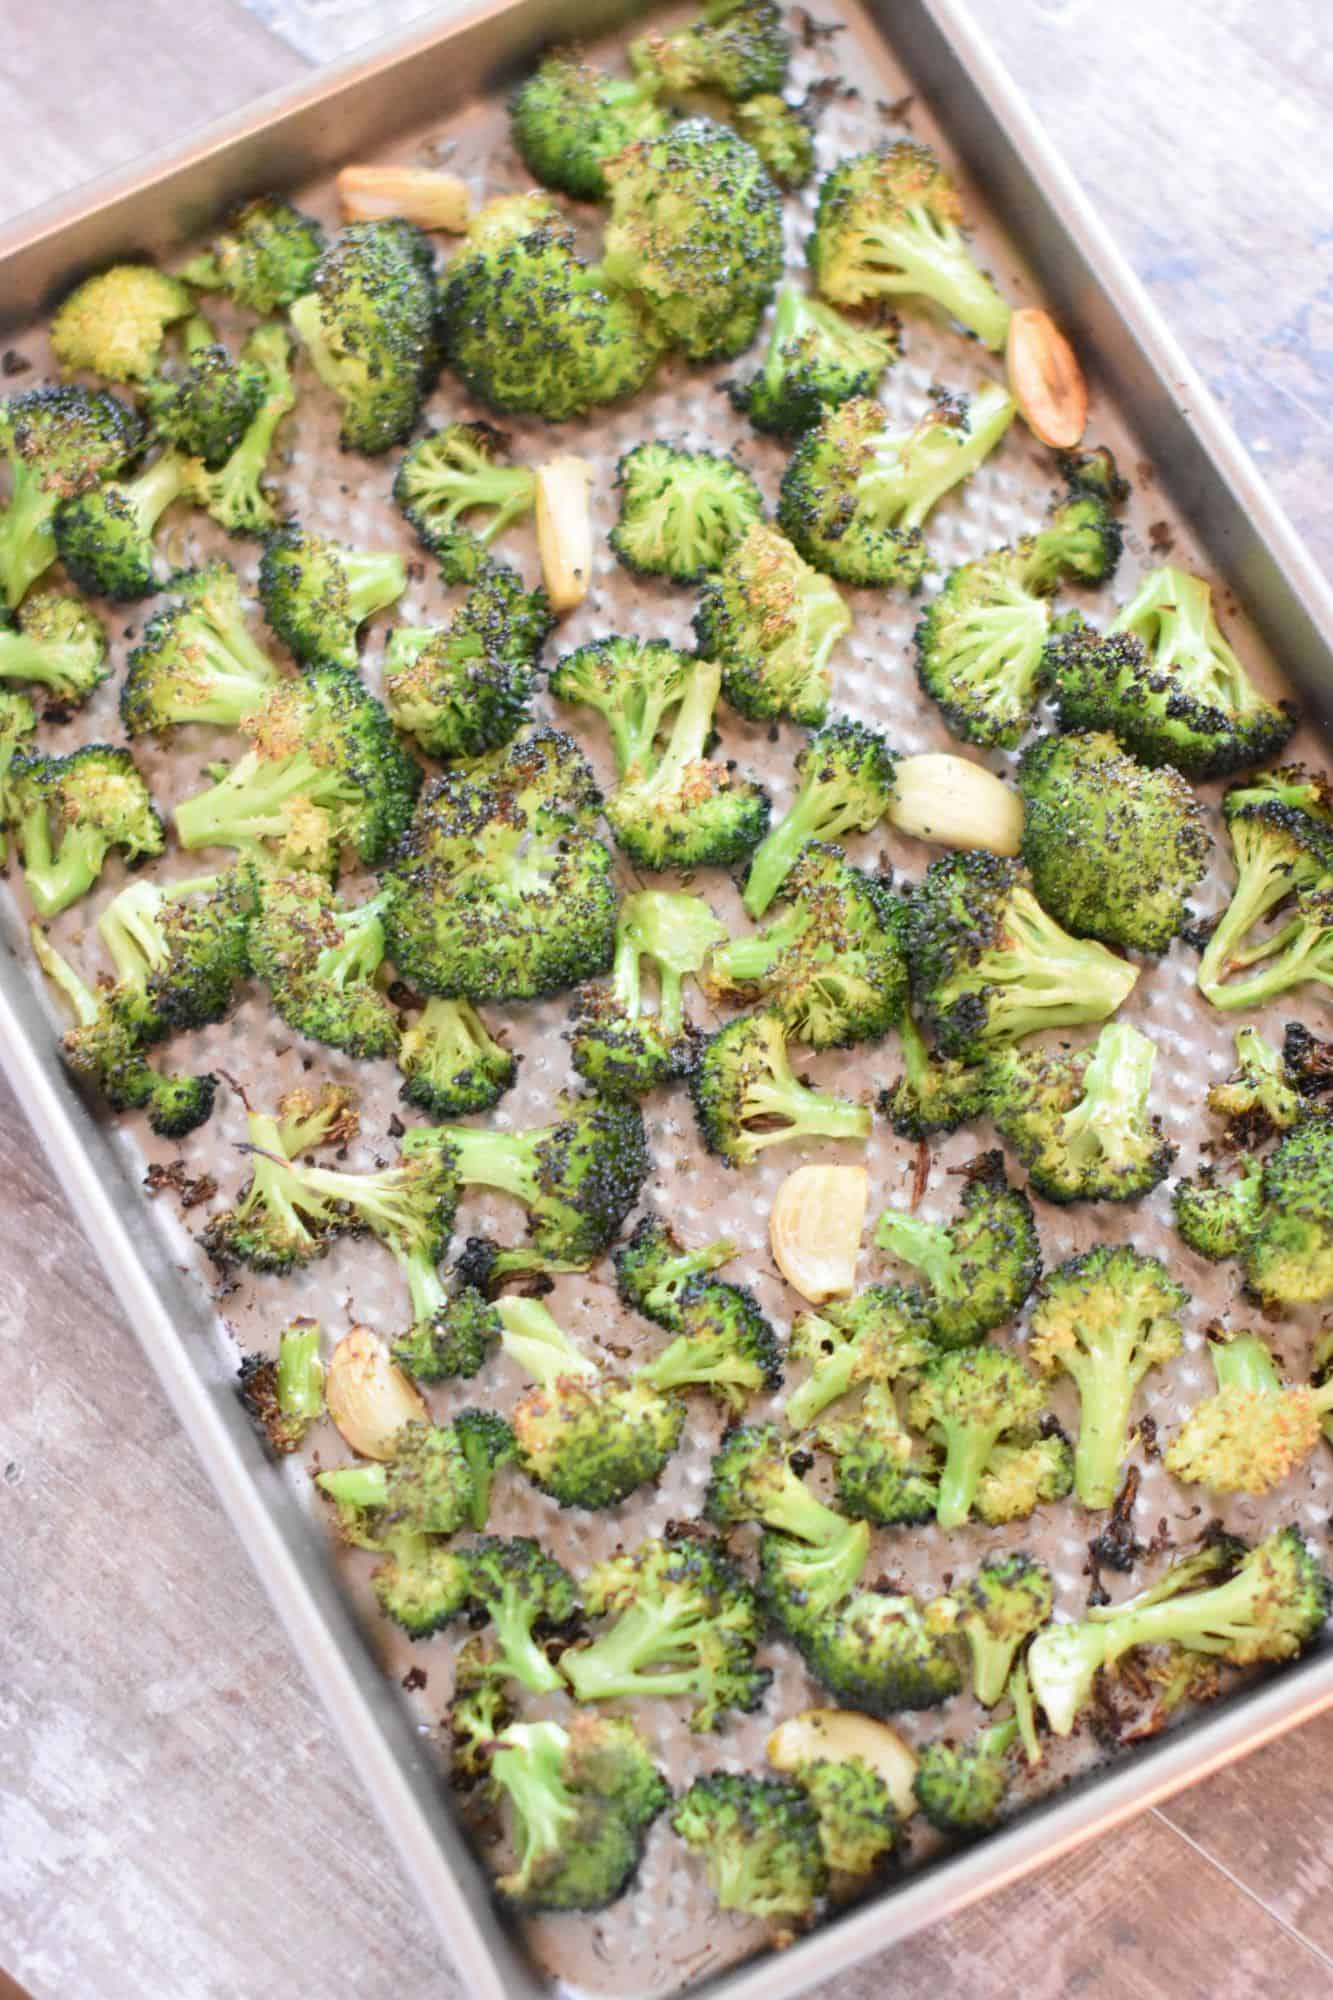 broccoli and garlic on baking sheet after cooking